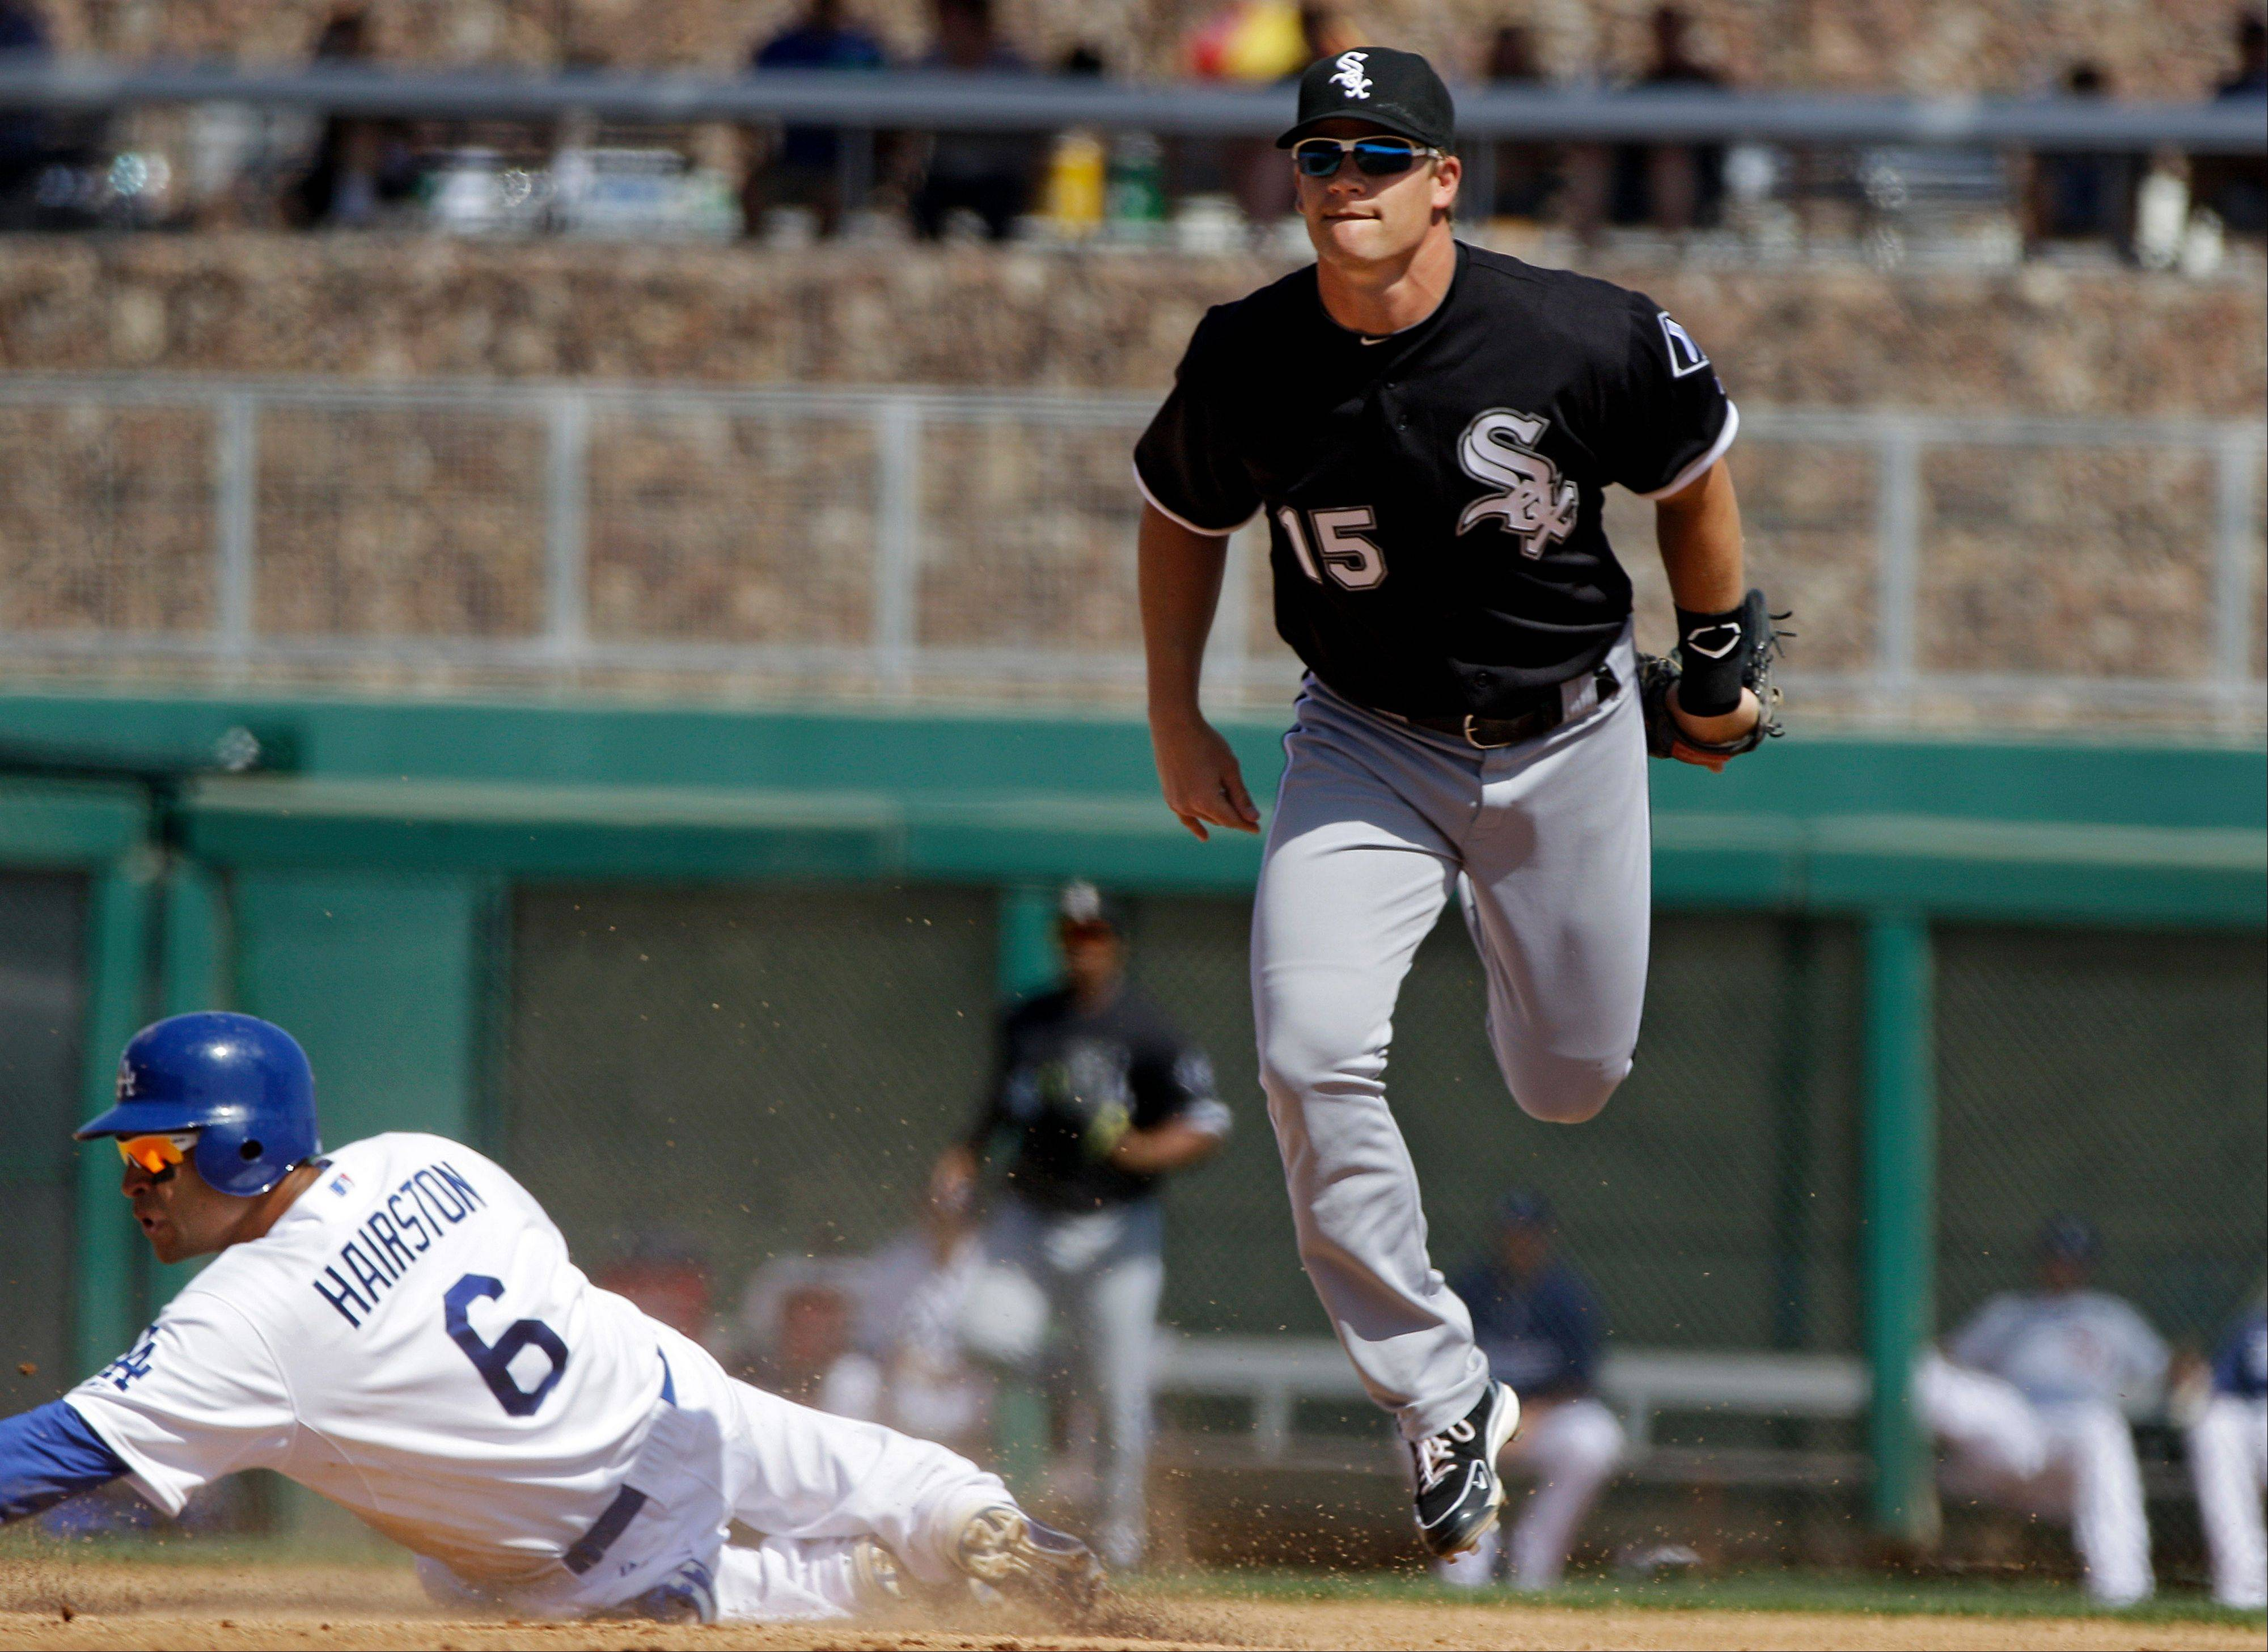 White Sox fans can follow Gordon Beckham on Twitter @gordonbeckham.